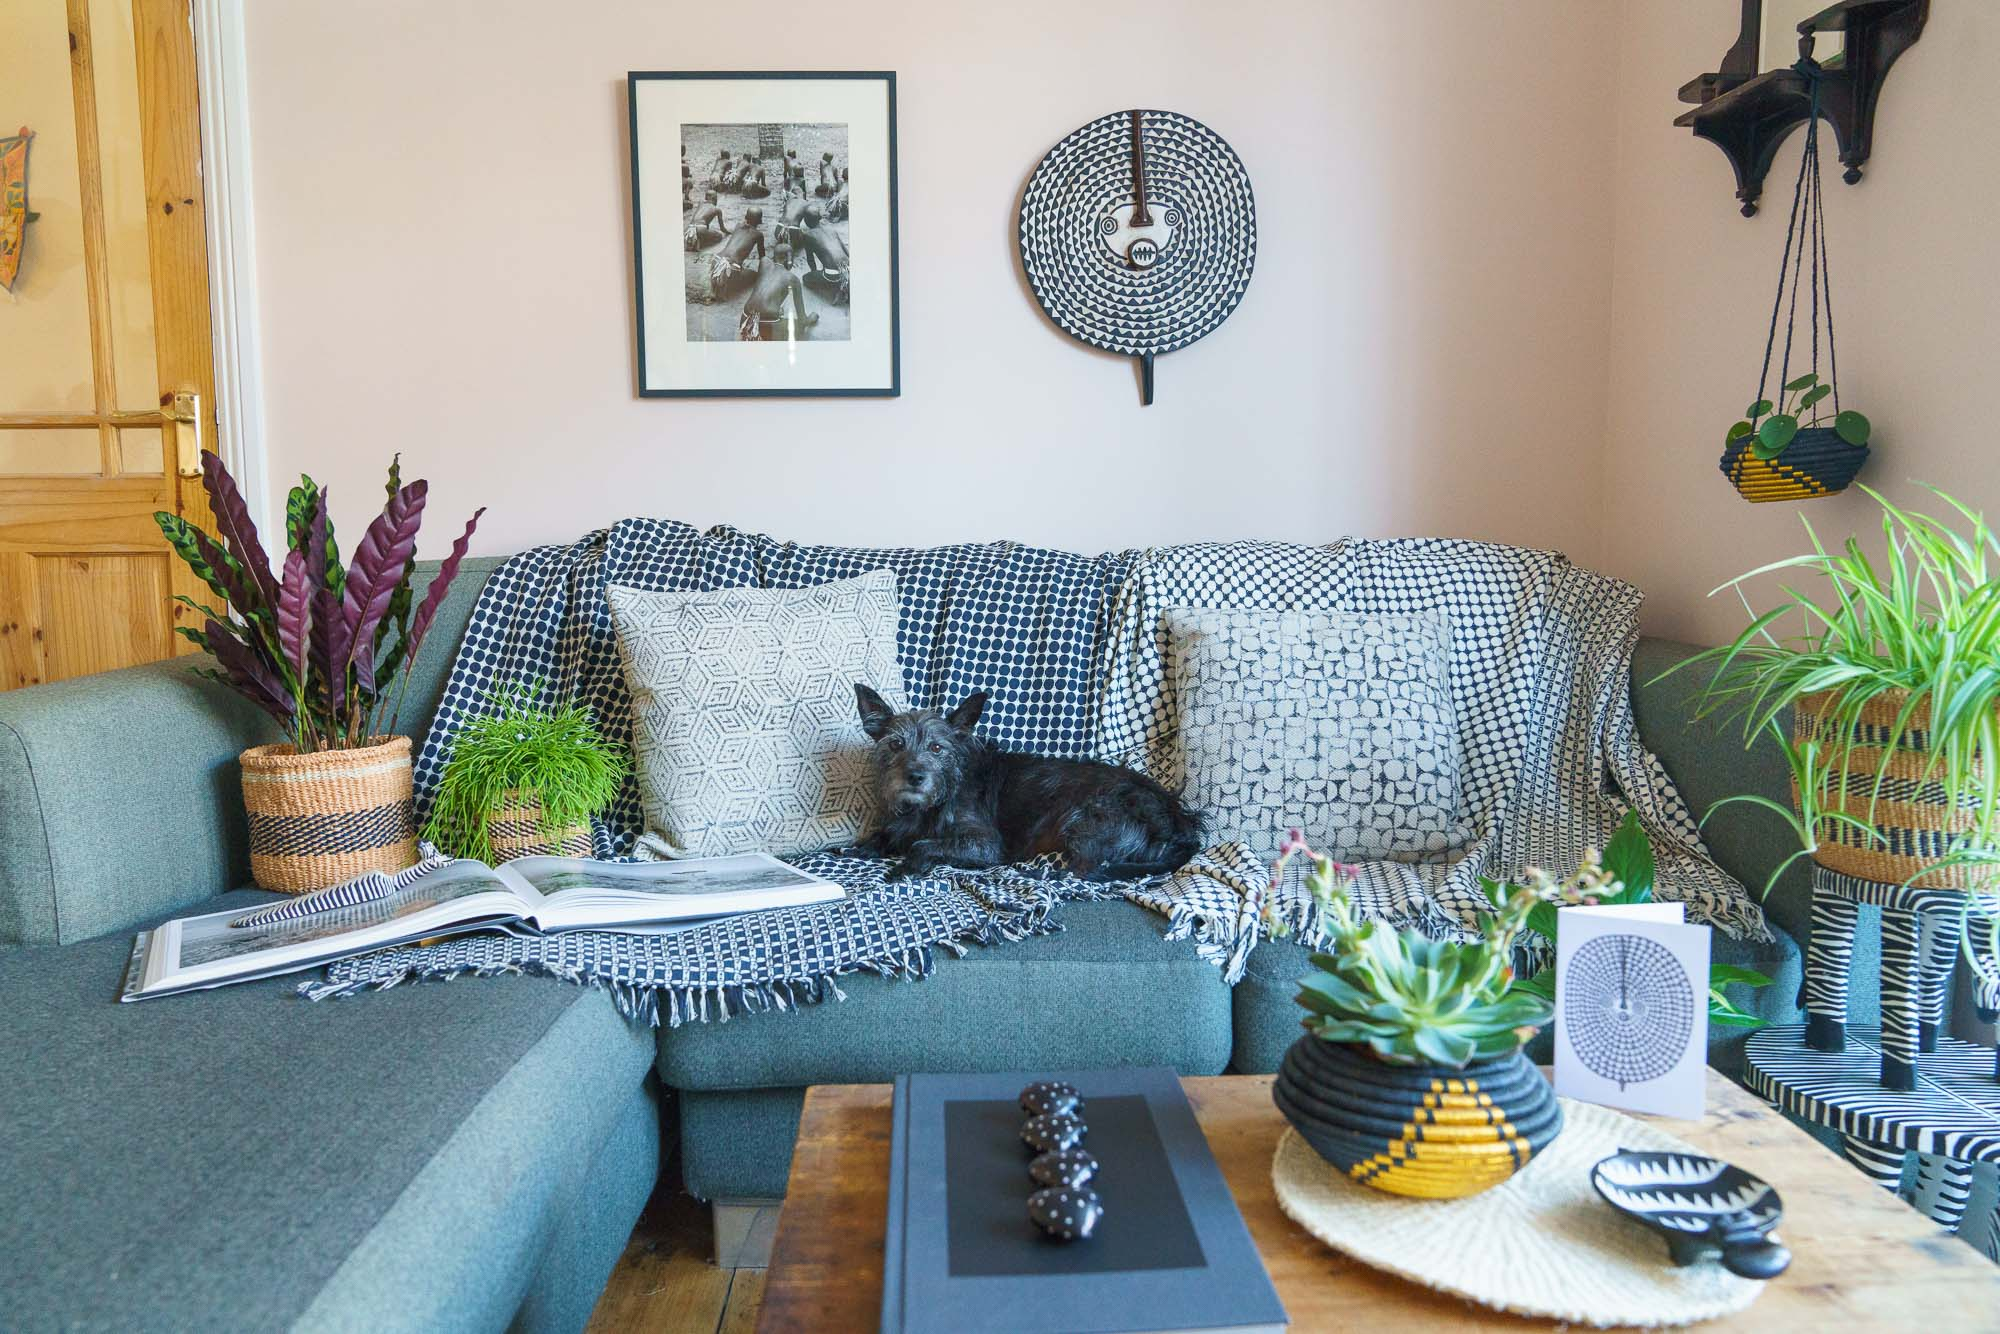 Styling Your Home with African Masks